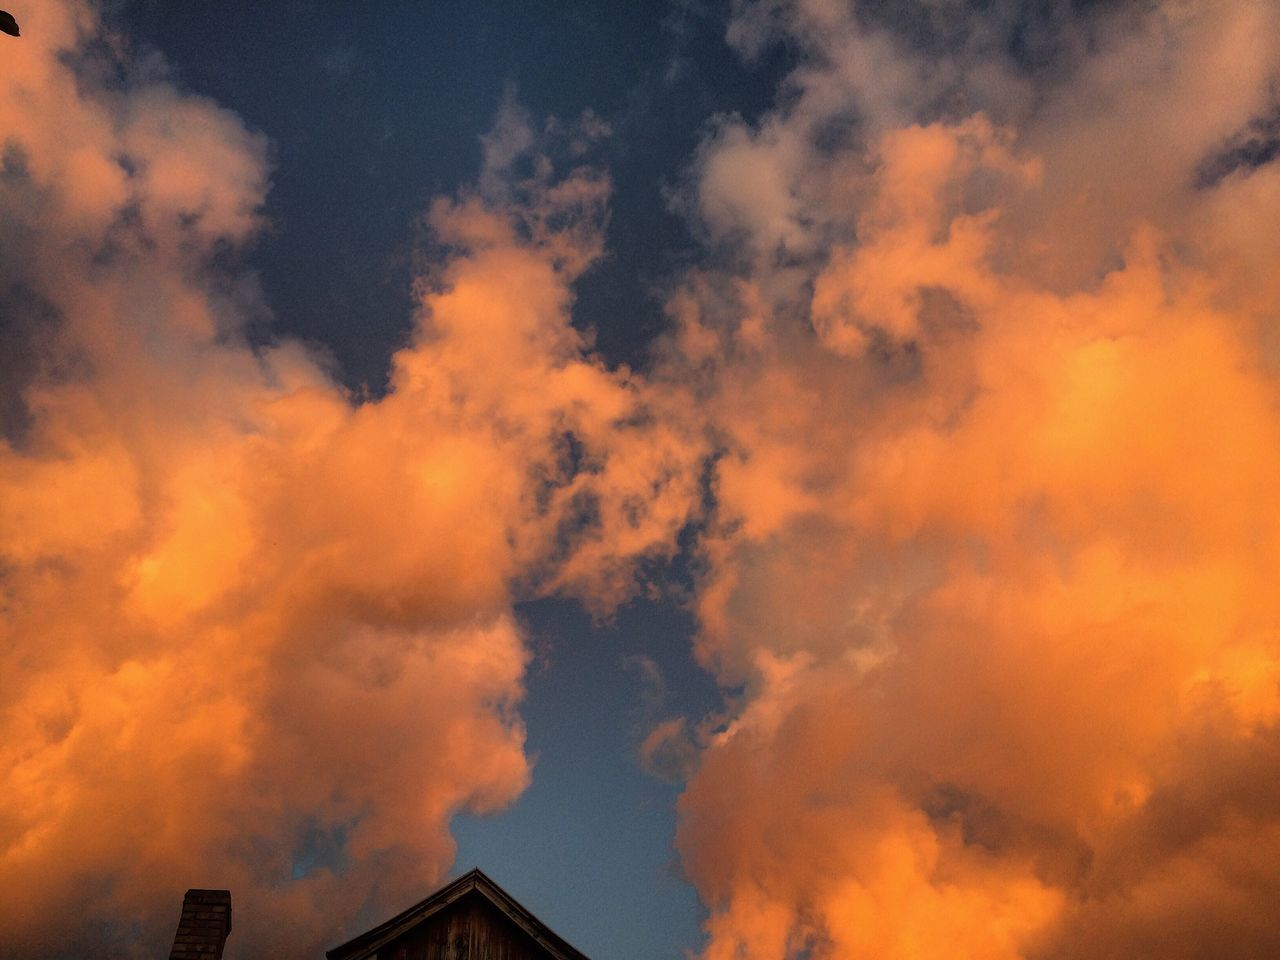 sky, cloud - sky, low angle view, orange color, nature, beauty in nature, sunset, no people, outdoors, scenics, building exterior, architecture, day